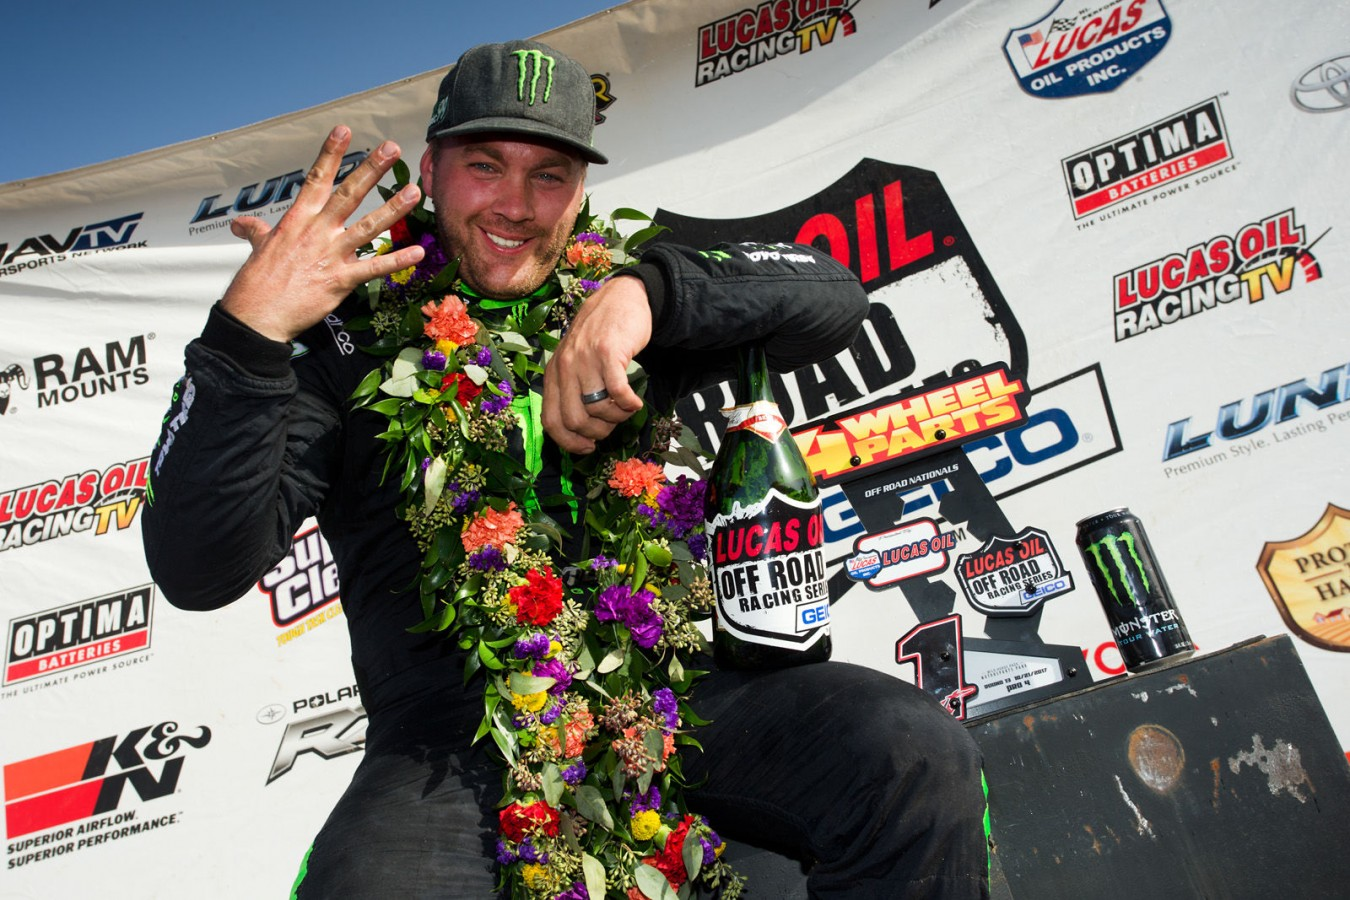 Kyle Leduc won the race and won the Pro 4 championship (4 years in a row, and 5 in the last 6 years).  Jeremy McGrath also won the Pro 2 championship for the year.